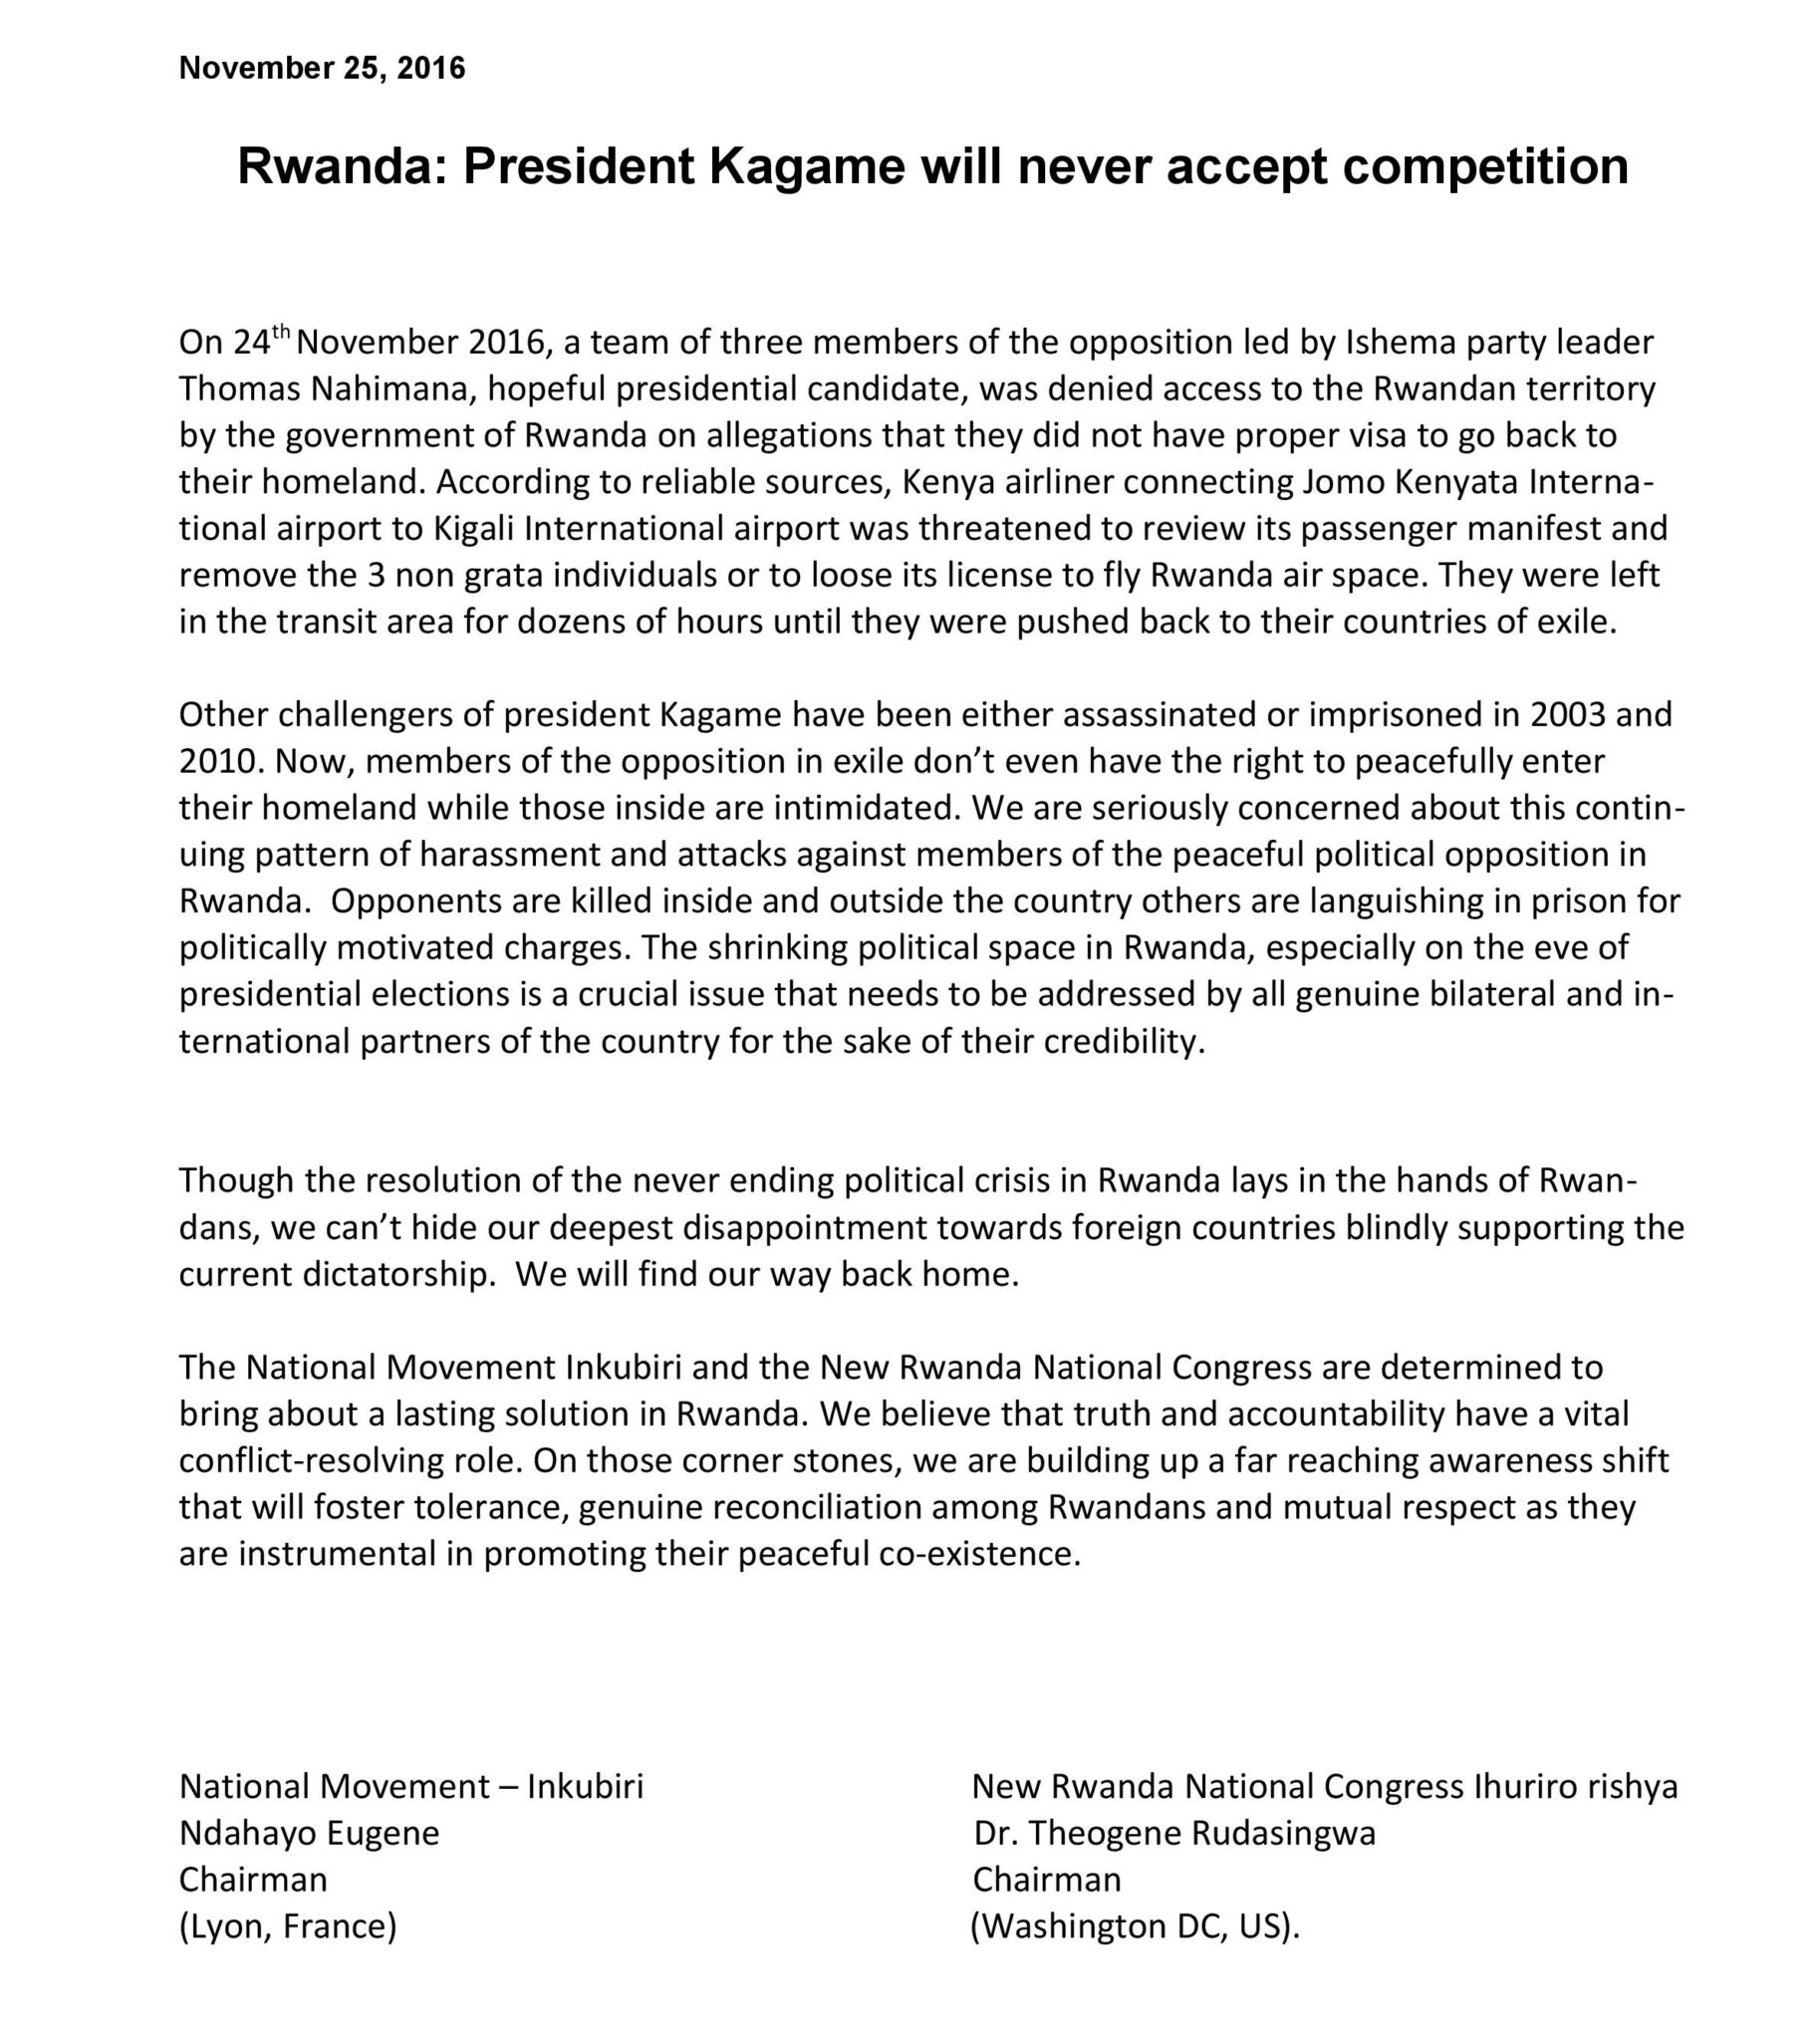 kagame-will-never-accept-political-competition-3-page-001